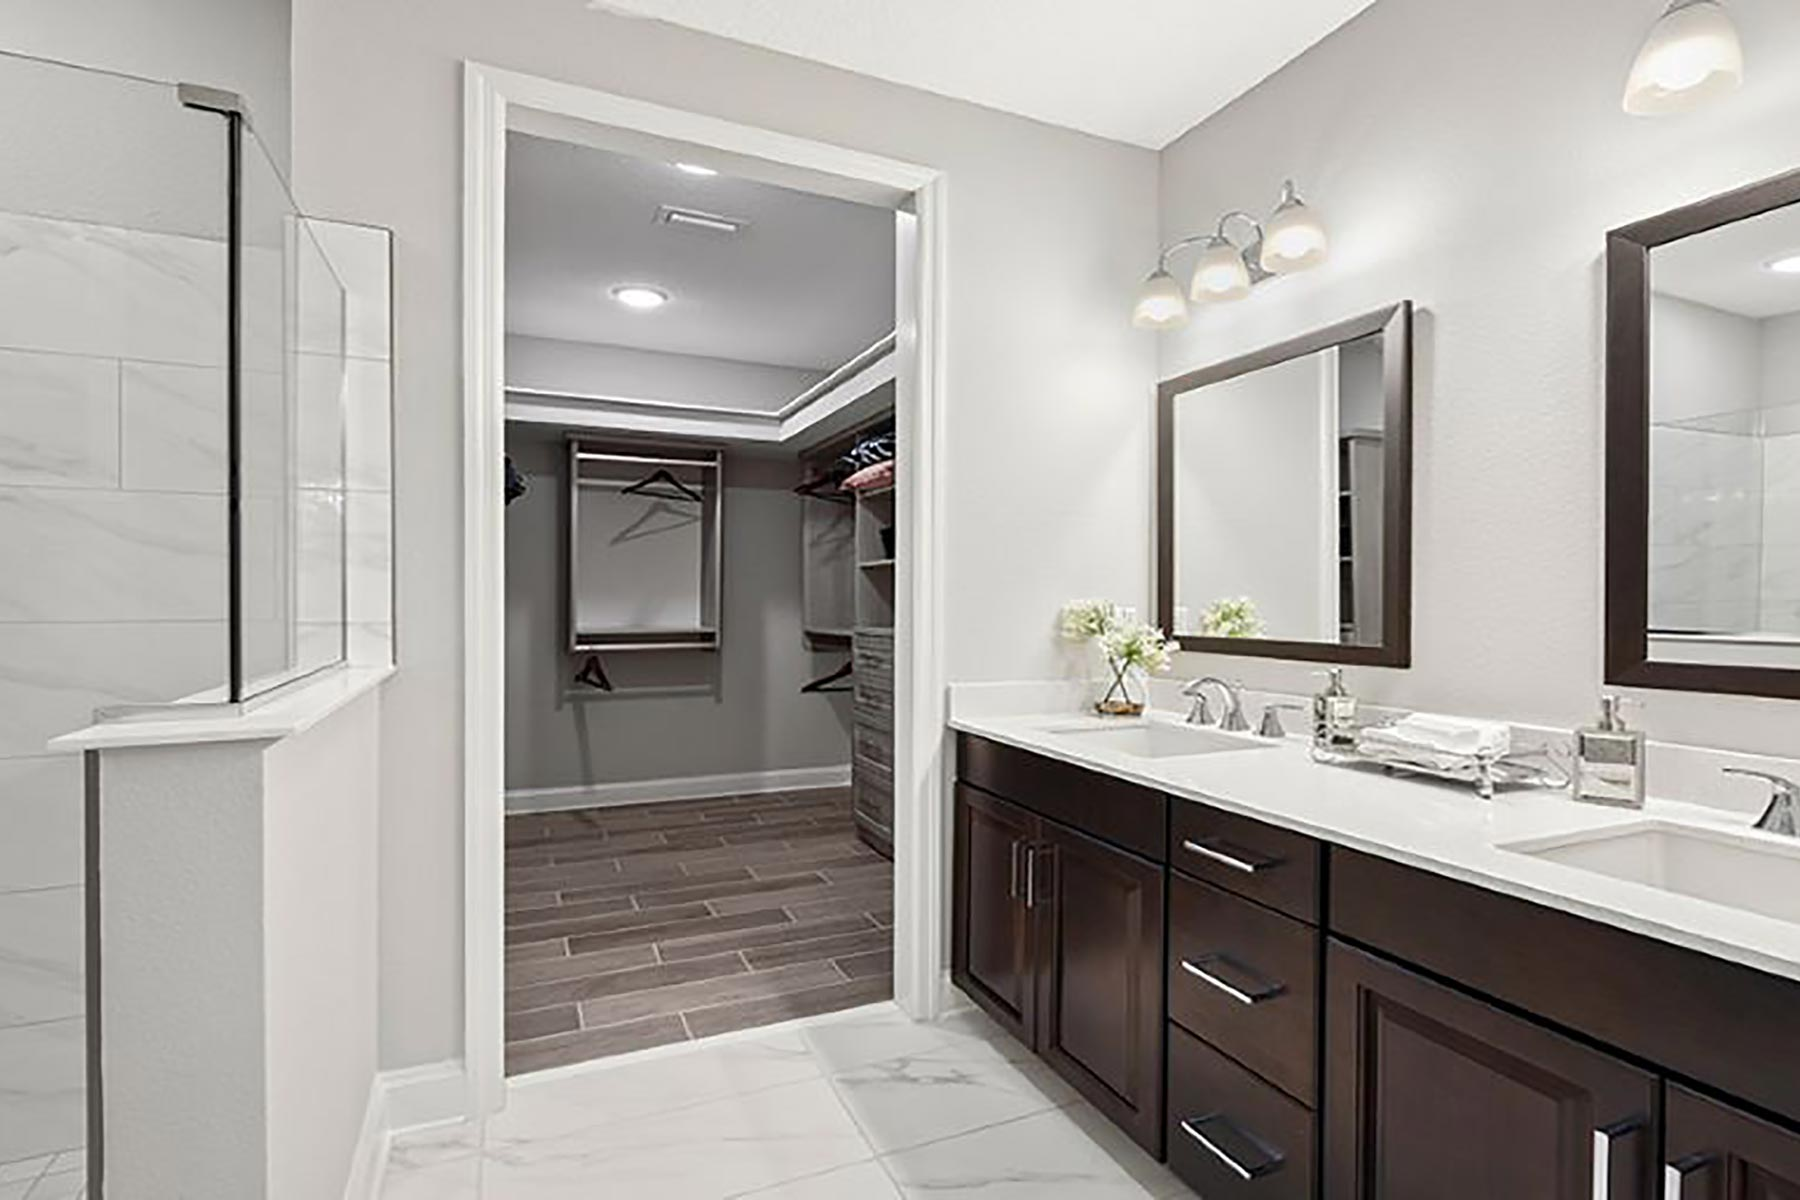 River Plan Bathroom_Master Bath at RiverTown - WaterSong in St. Johns Florida by Mattamy Homes